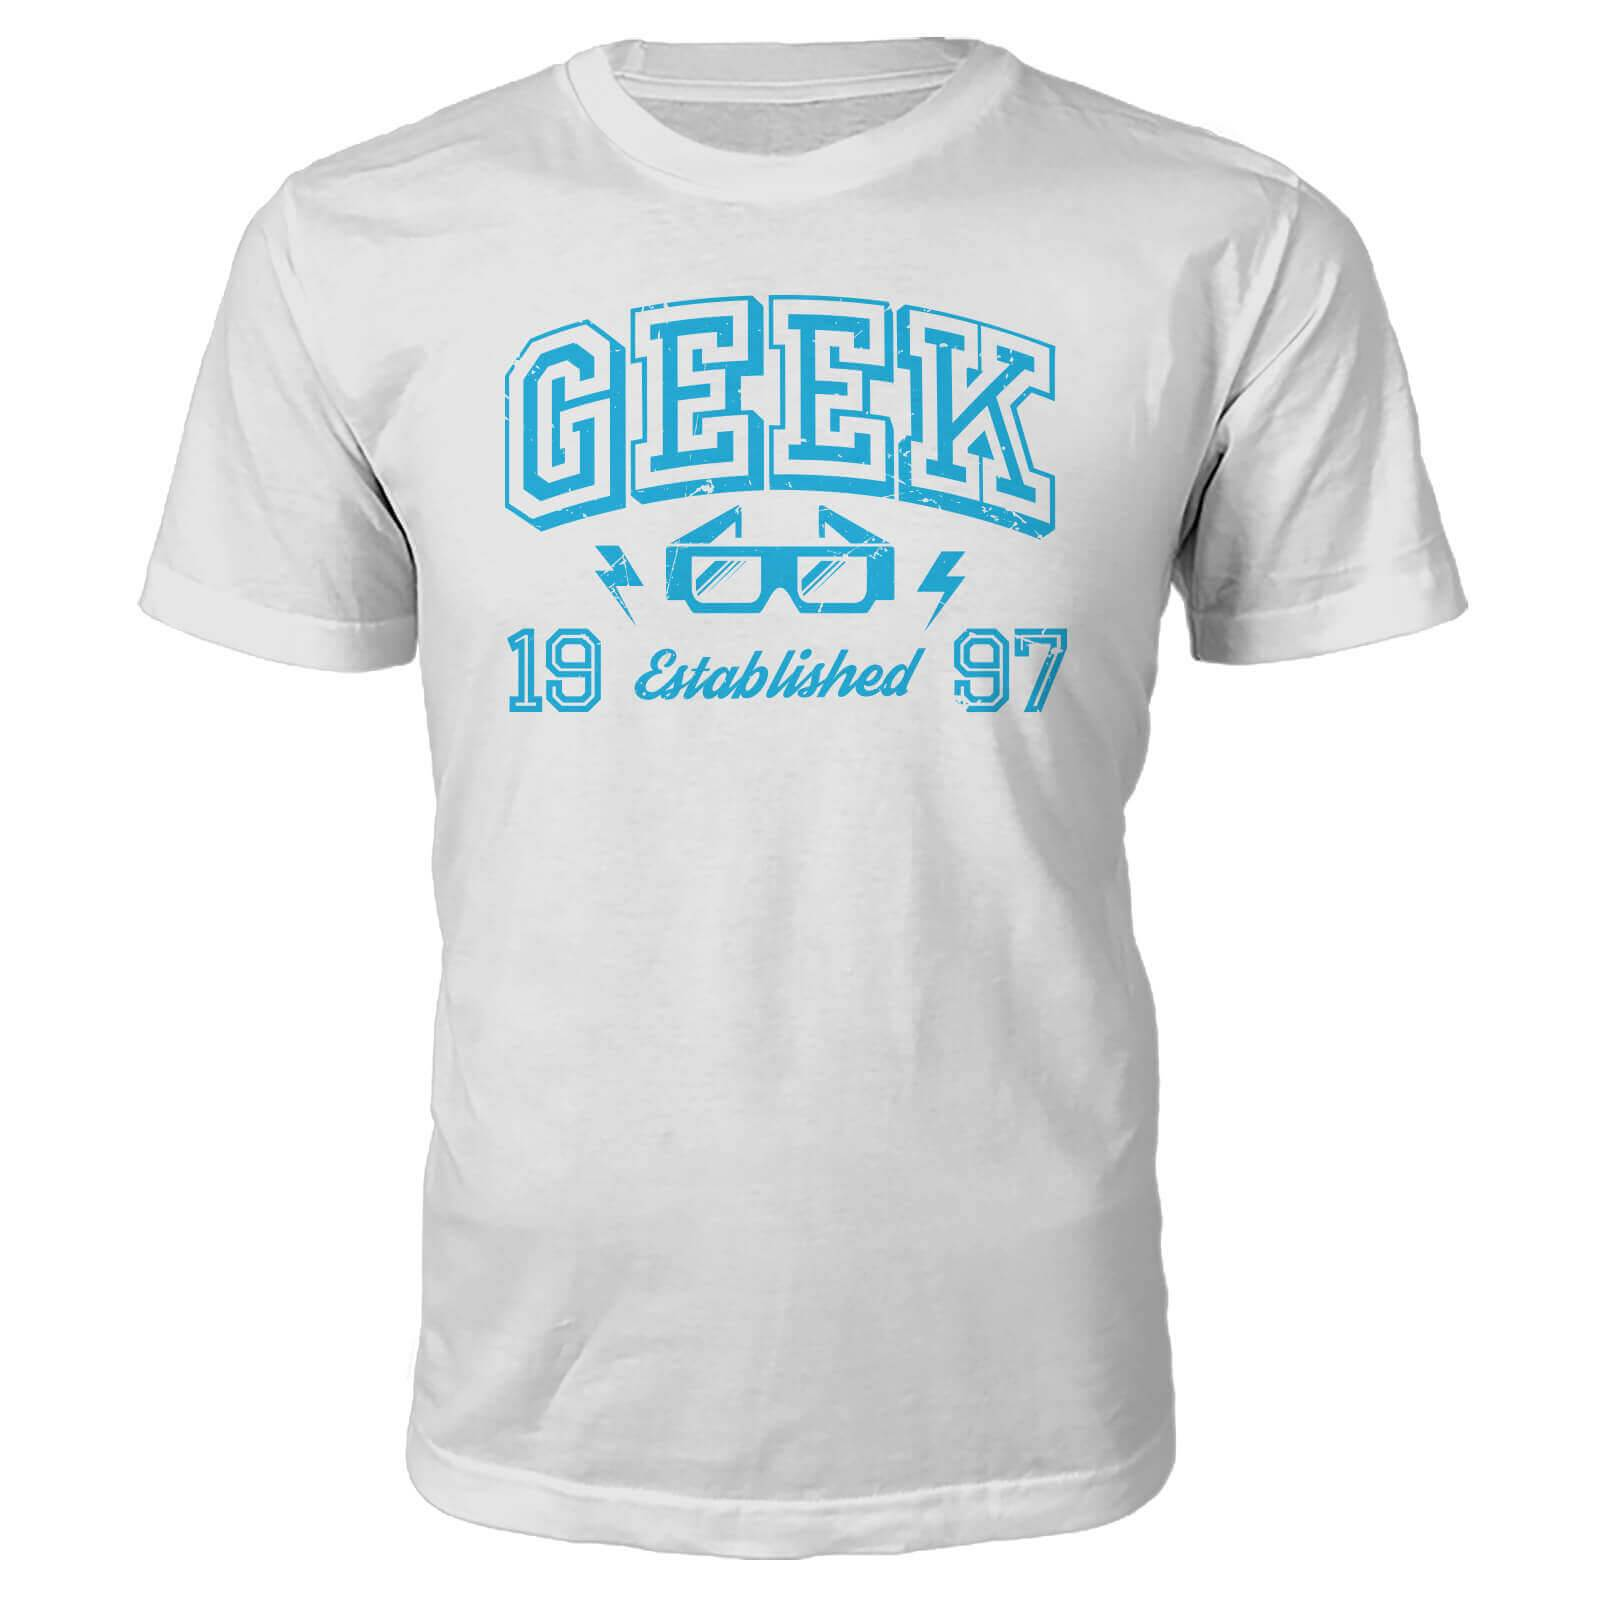 The Geek Collection Geek Established 1990's T-Shirt- White - XL - 1997